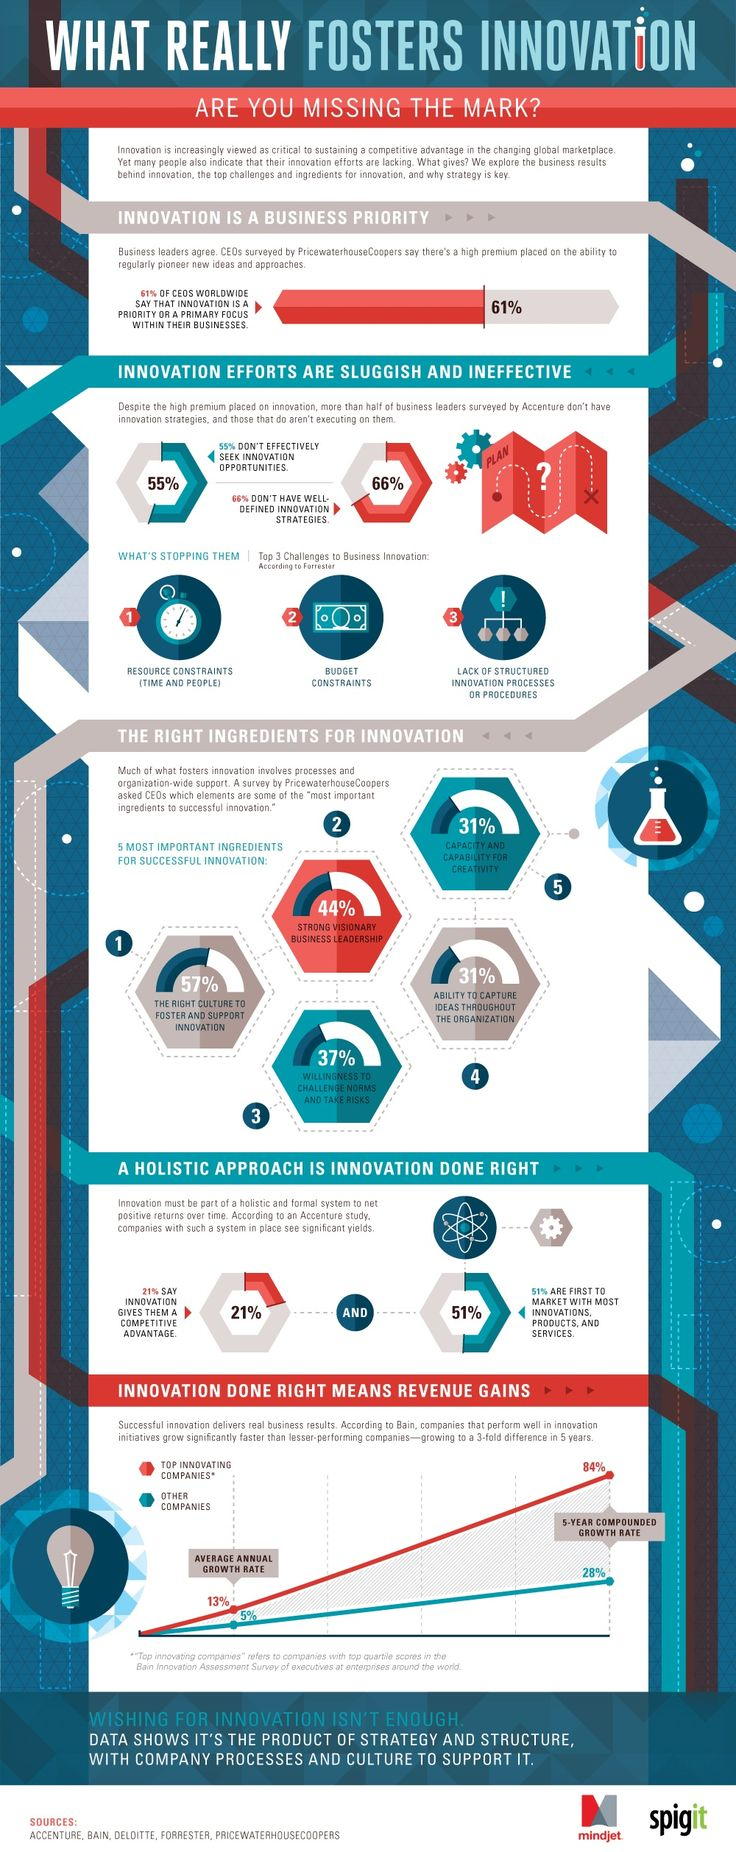 What really fosters #innovation? This insightful infographic tells the story. #creativity #culture